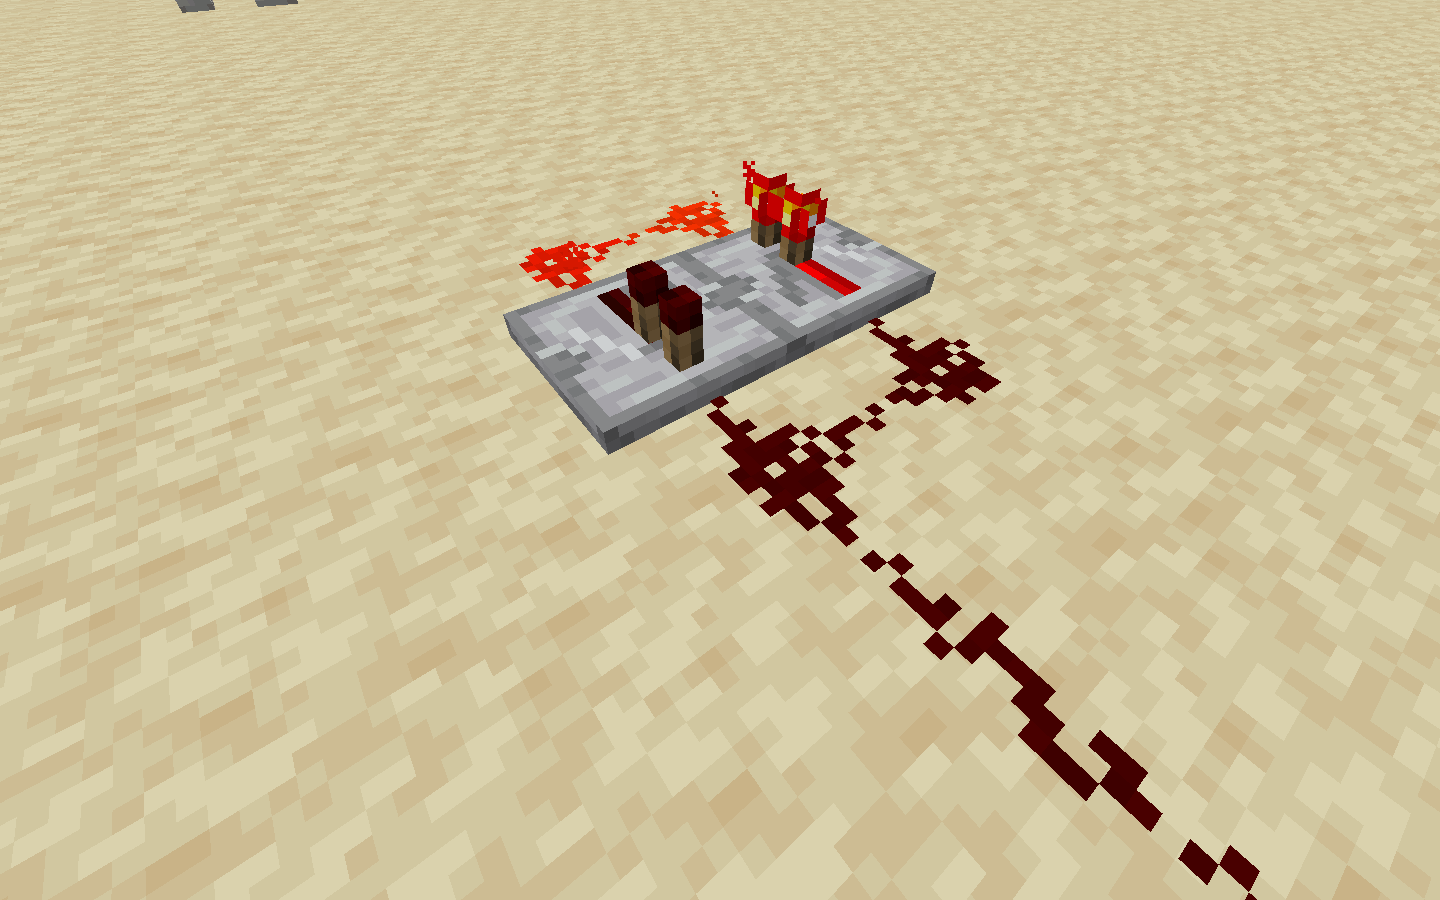 Mc 140156 Redstone Clocks Freeze Whenever I Walk Away From The Clock Minecraft Project 2018 11 25 190330